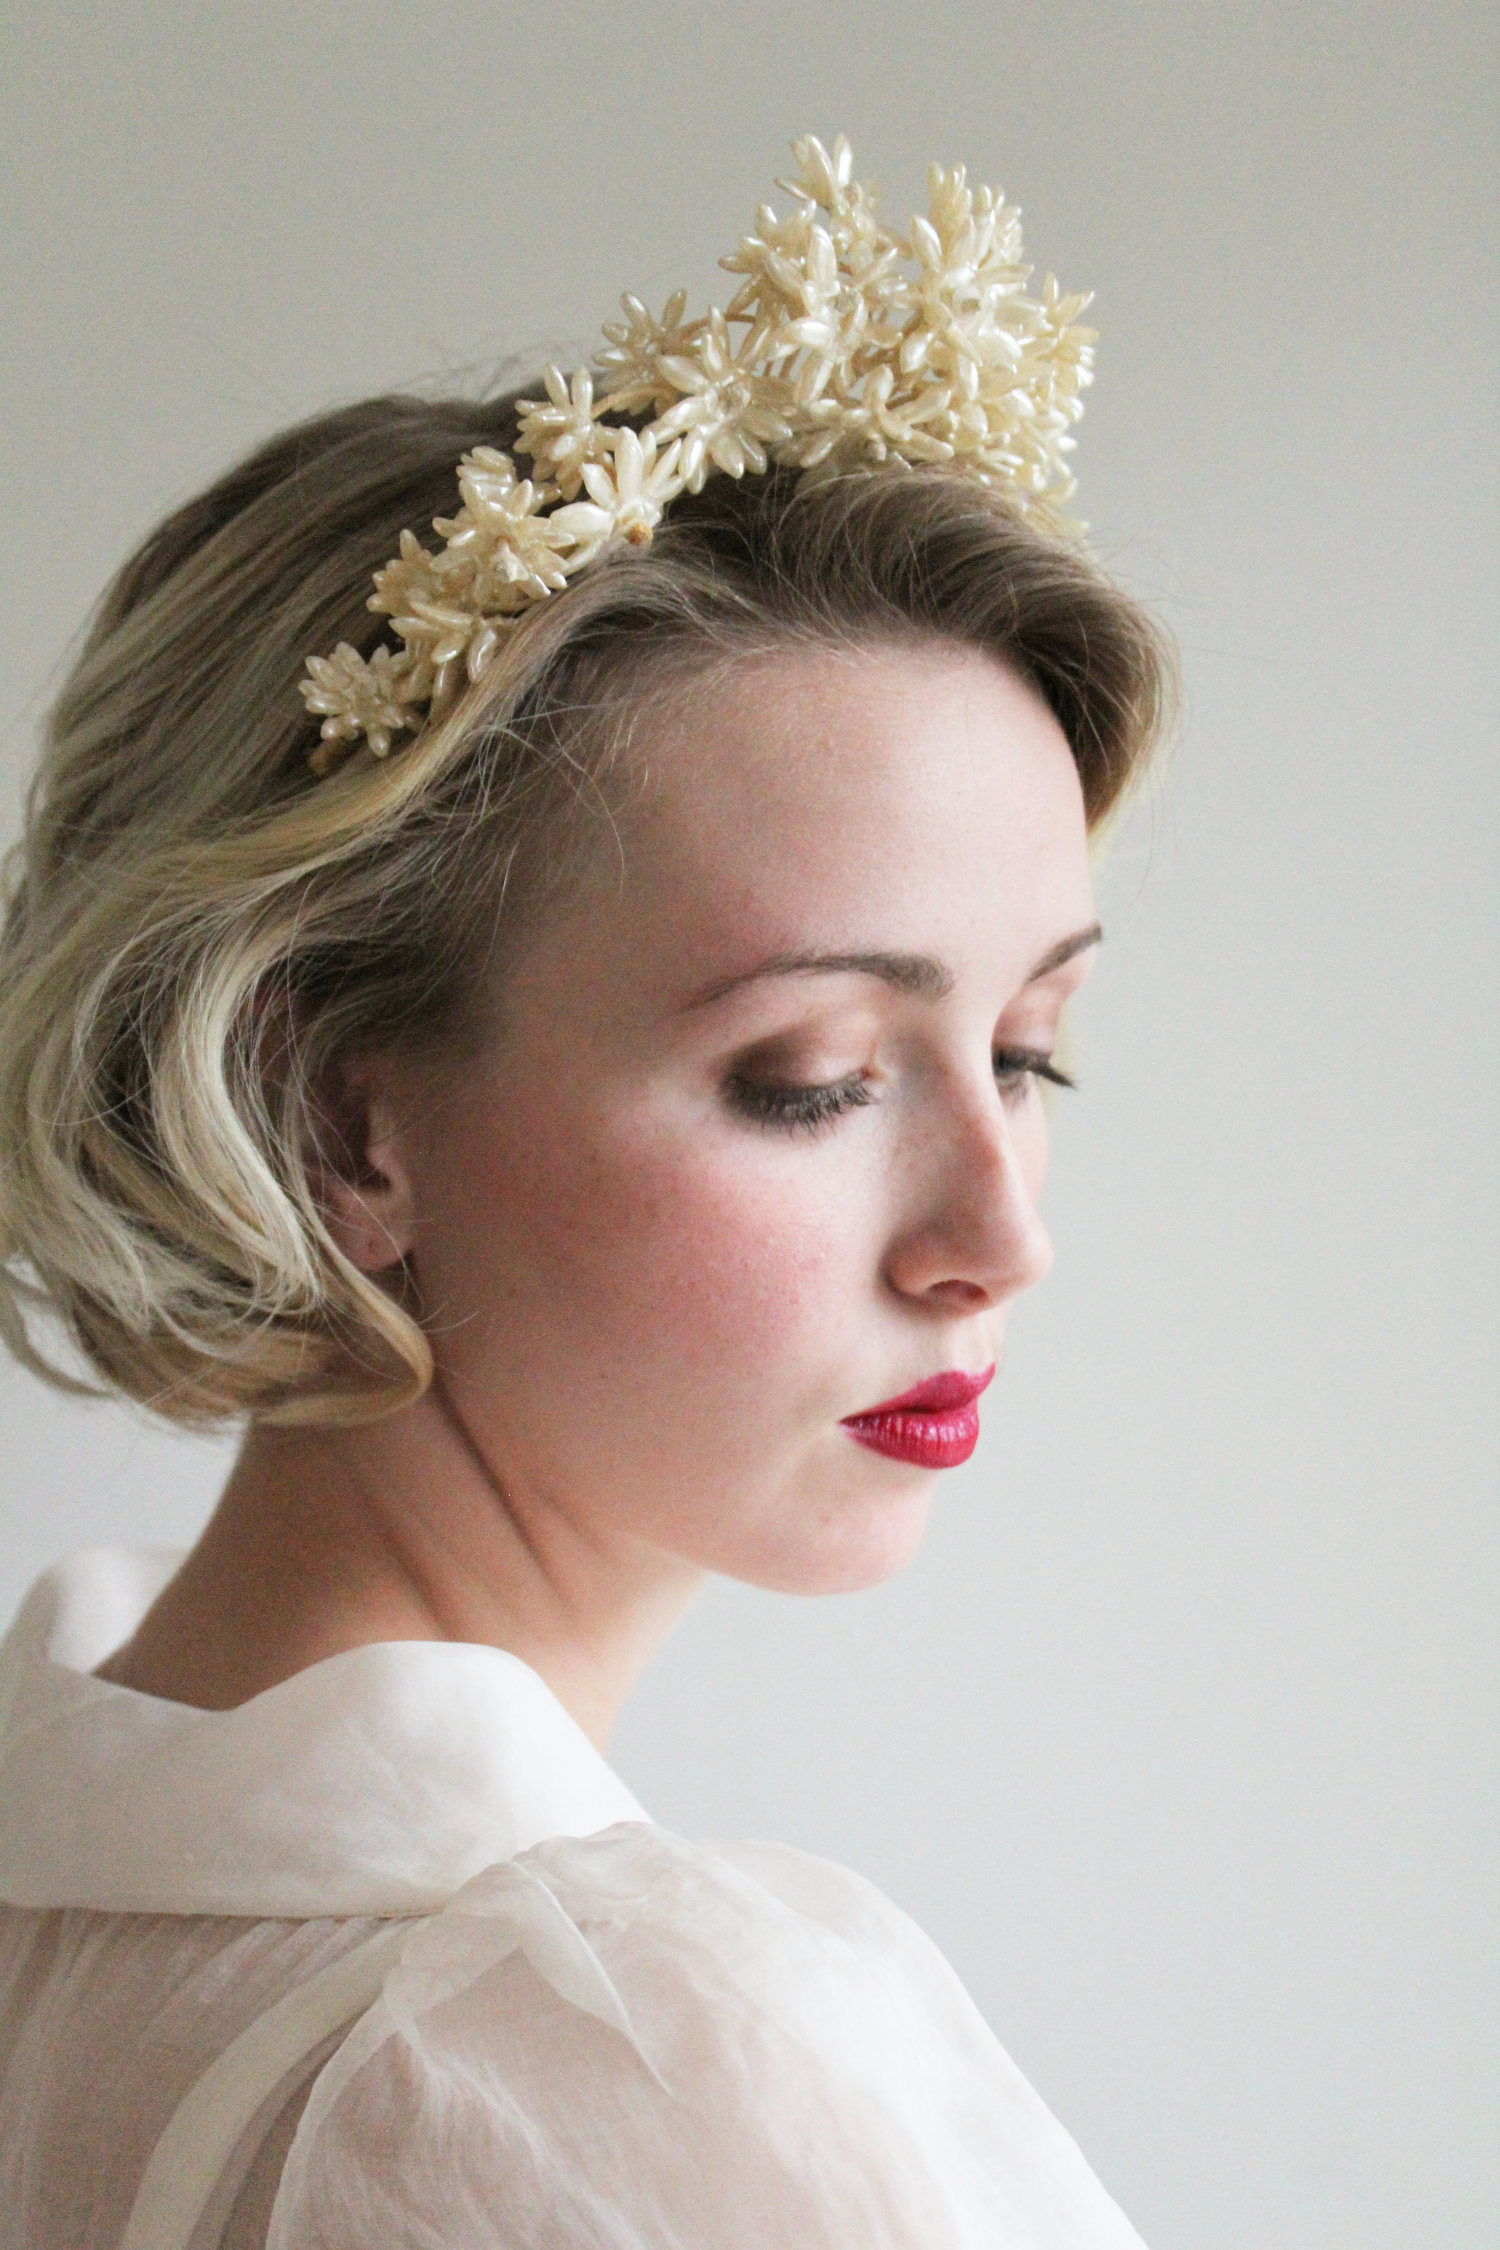 Vintage 1930s 40s wax flower bridal crown mirandas vintage bridal vintage 1930s 40s wax flower bridal crown izmirmasajfo Choice Image